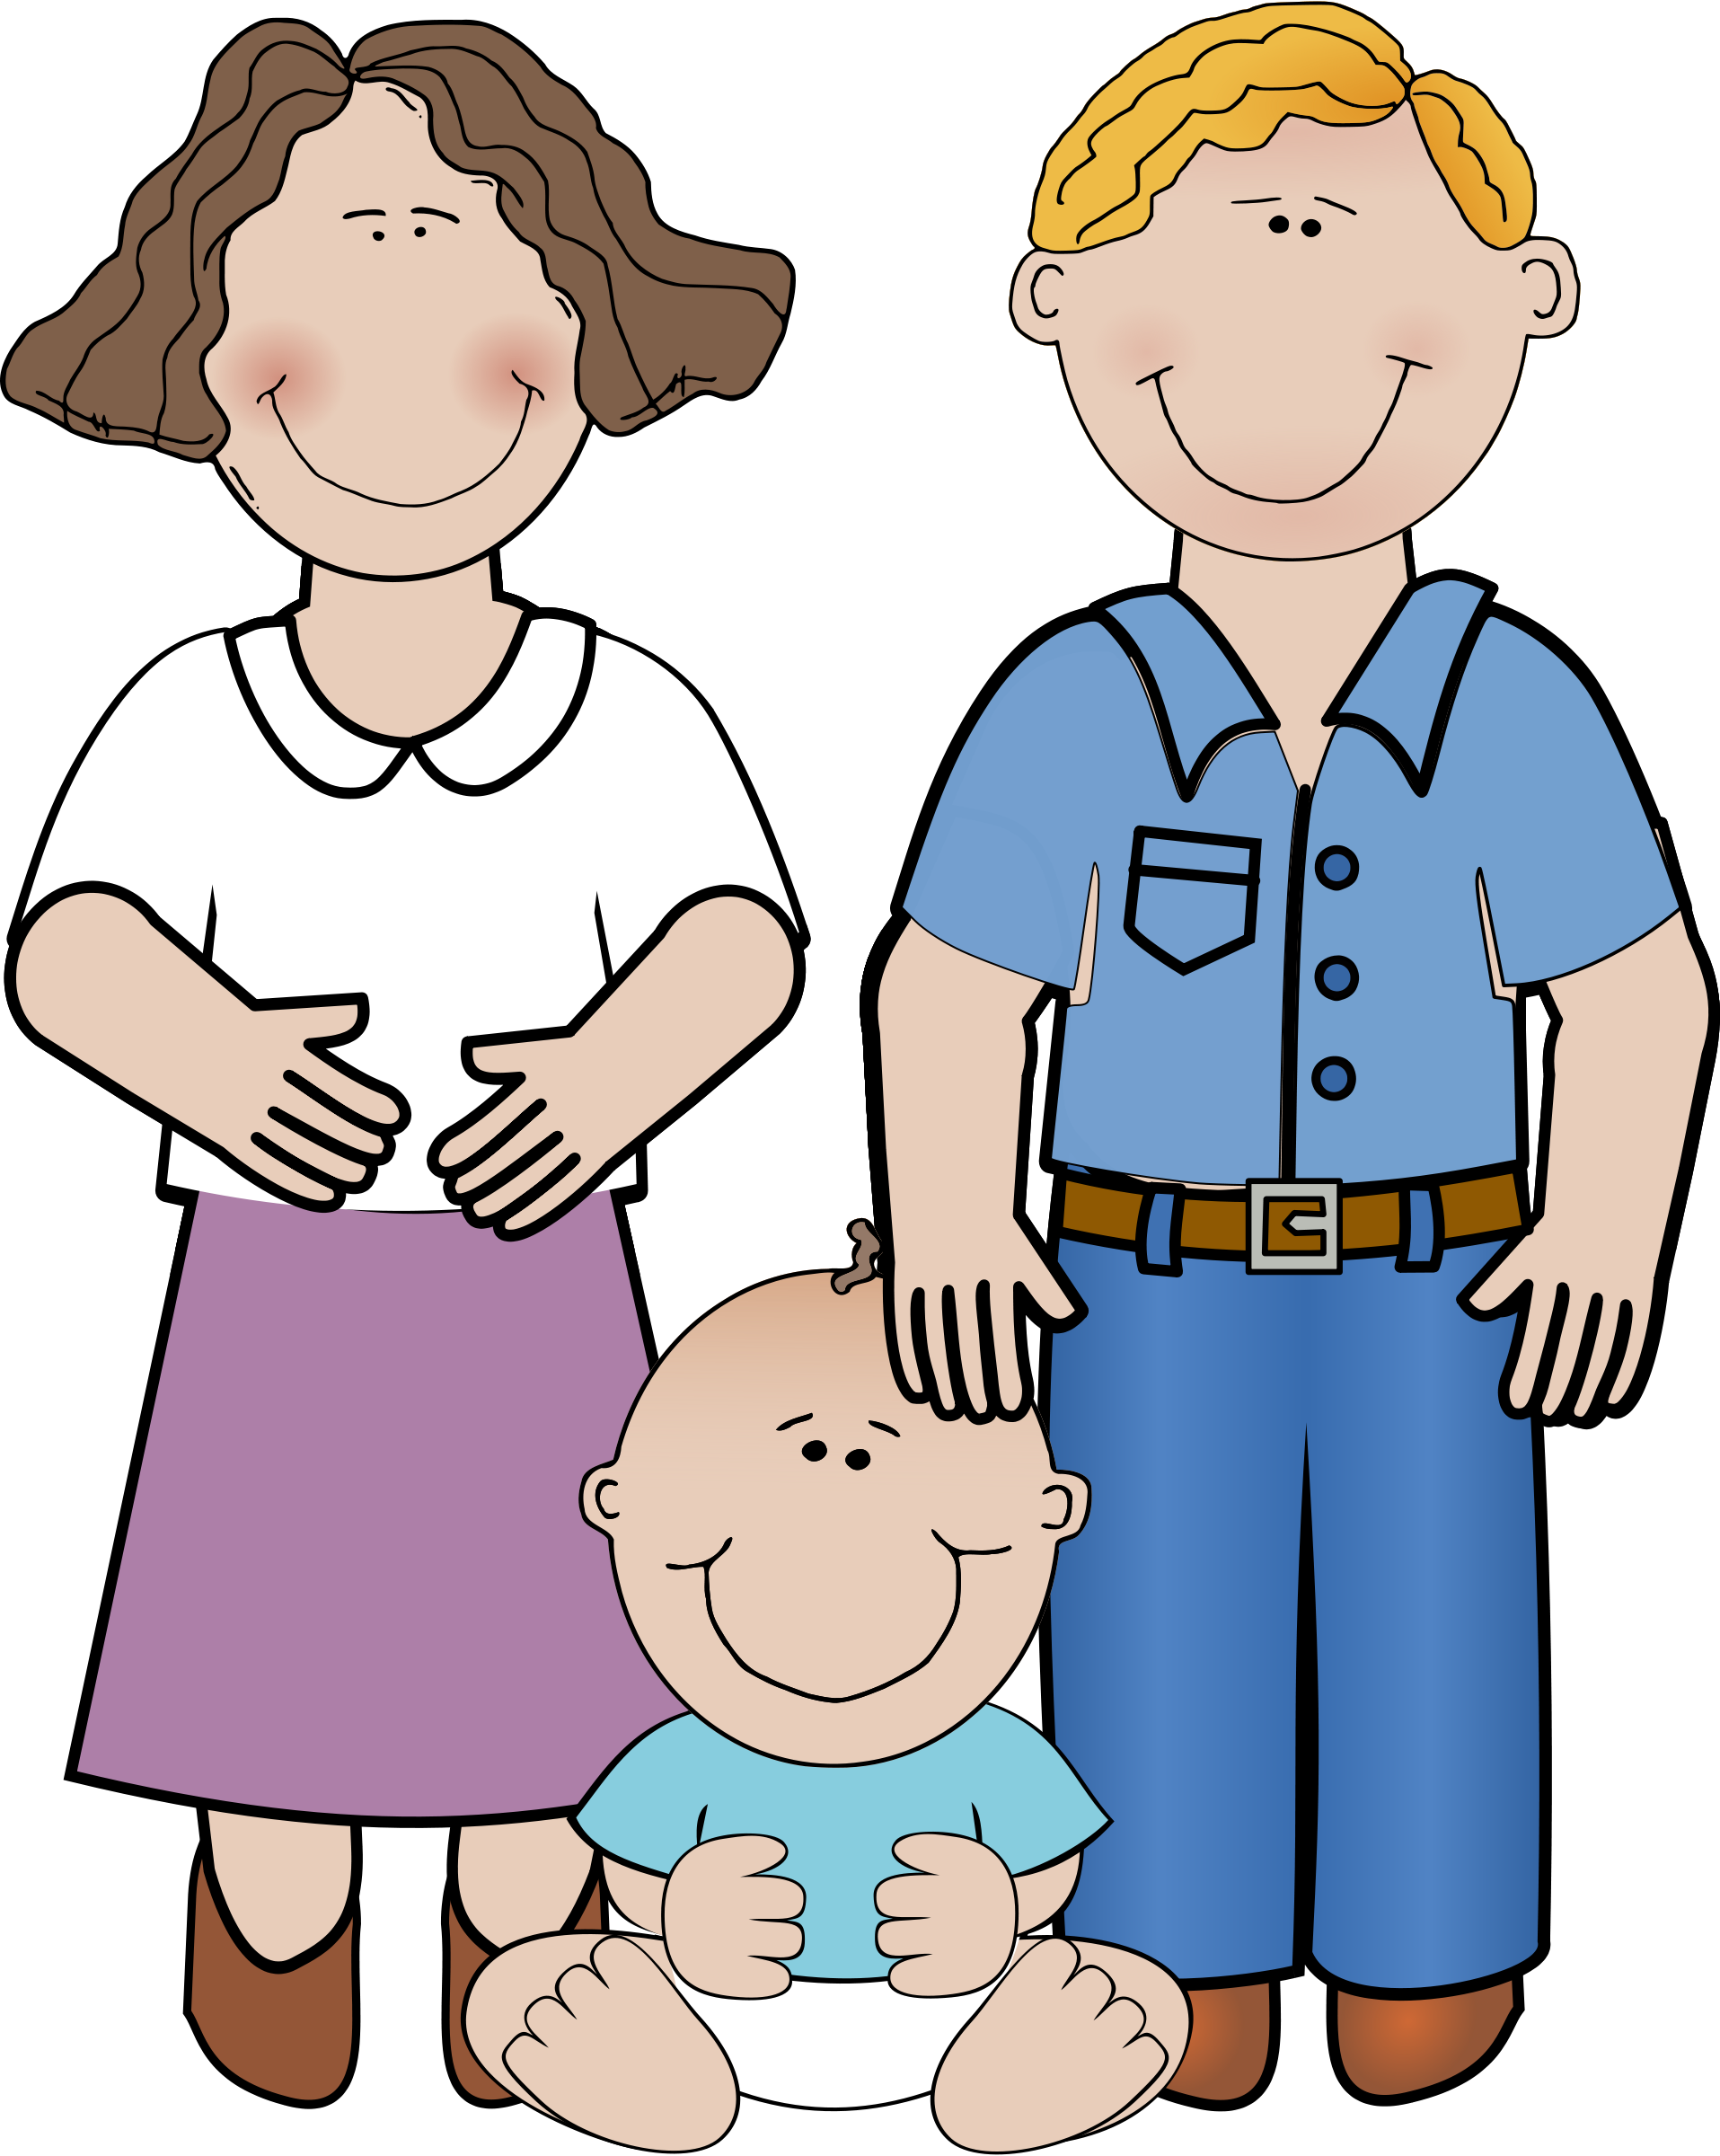 Money from parents clipart banner free library teacher | Norah Colvin banner free library